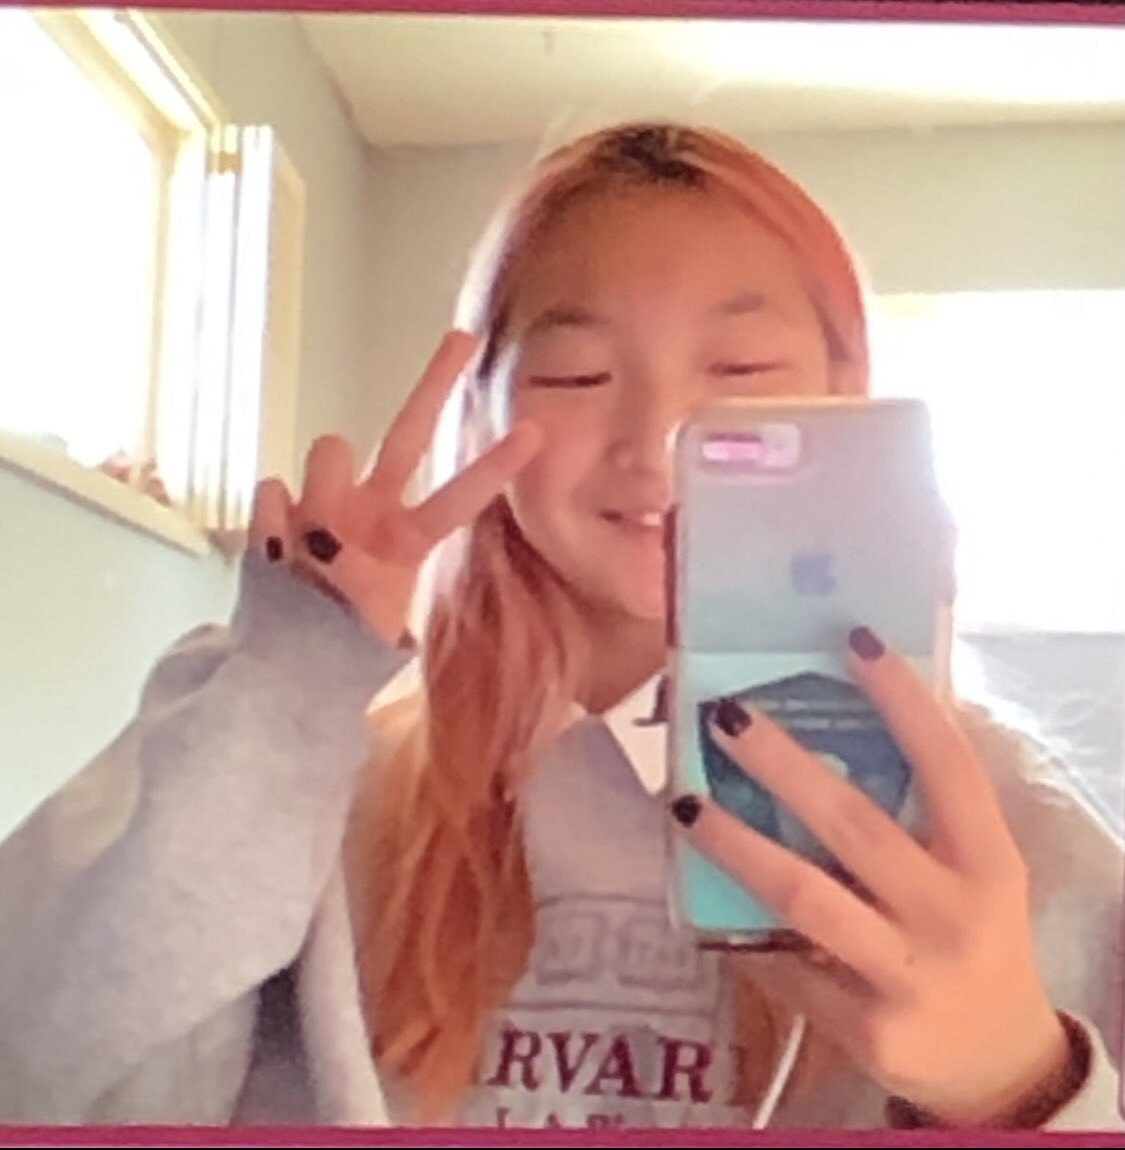 ⠀       ˗ˏˋ smiley faces in the chat :]] ´ˎ˗           ↳ #honktwtselfieday - rts pog !!